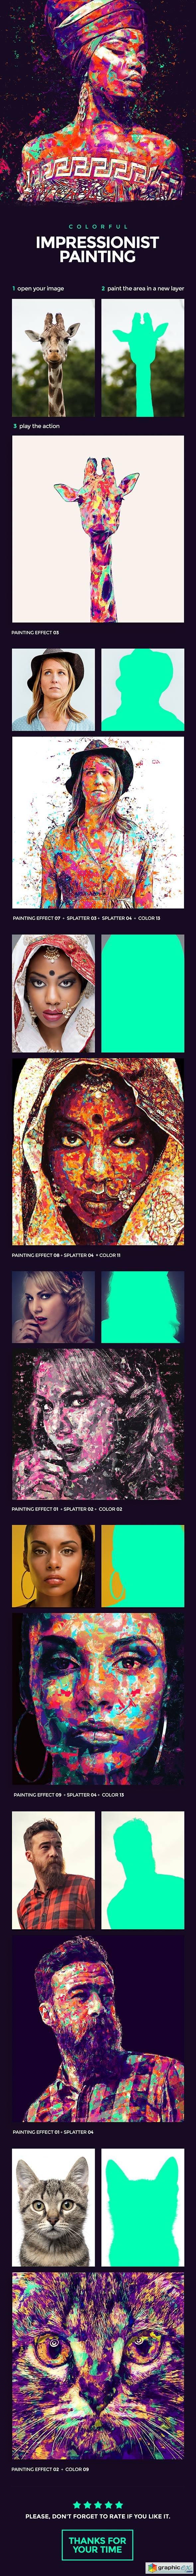 Impressionist Painting Photoshop Action